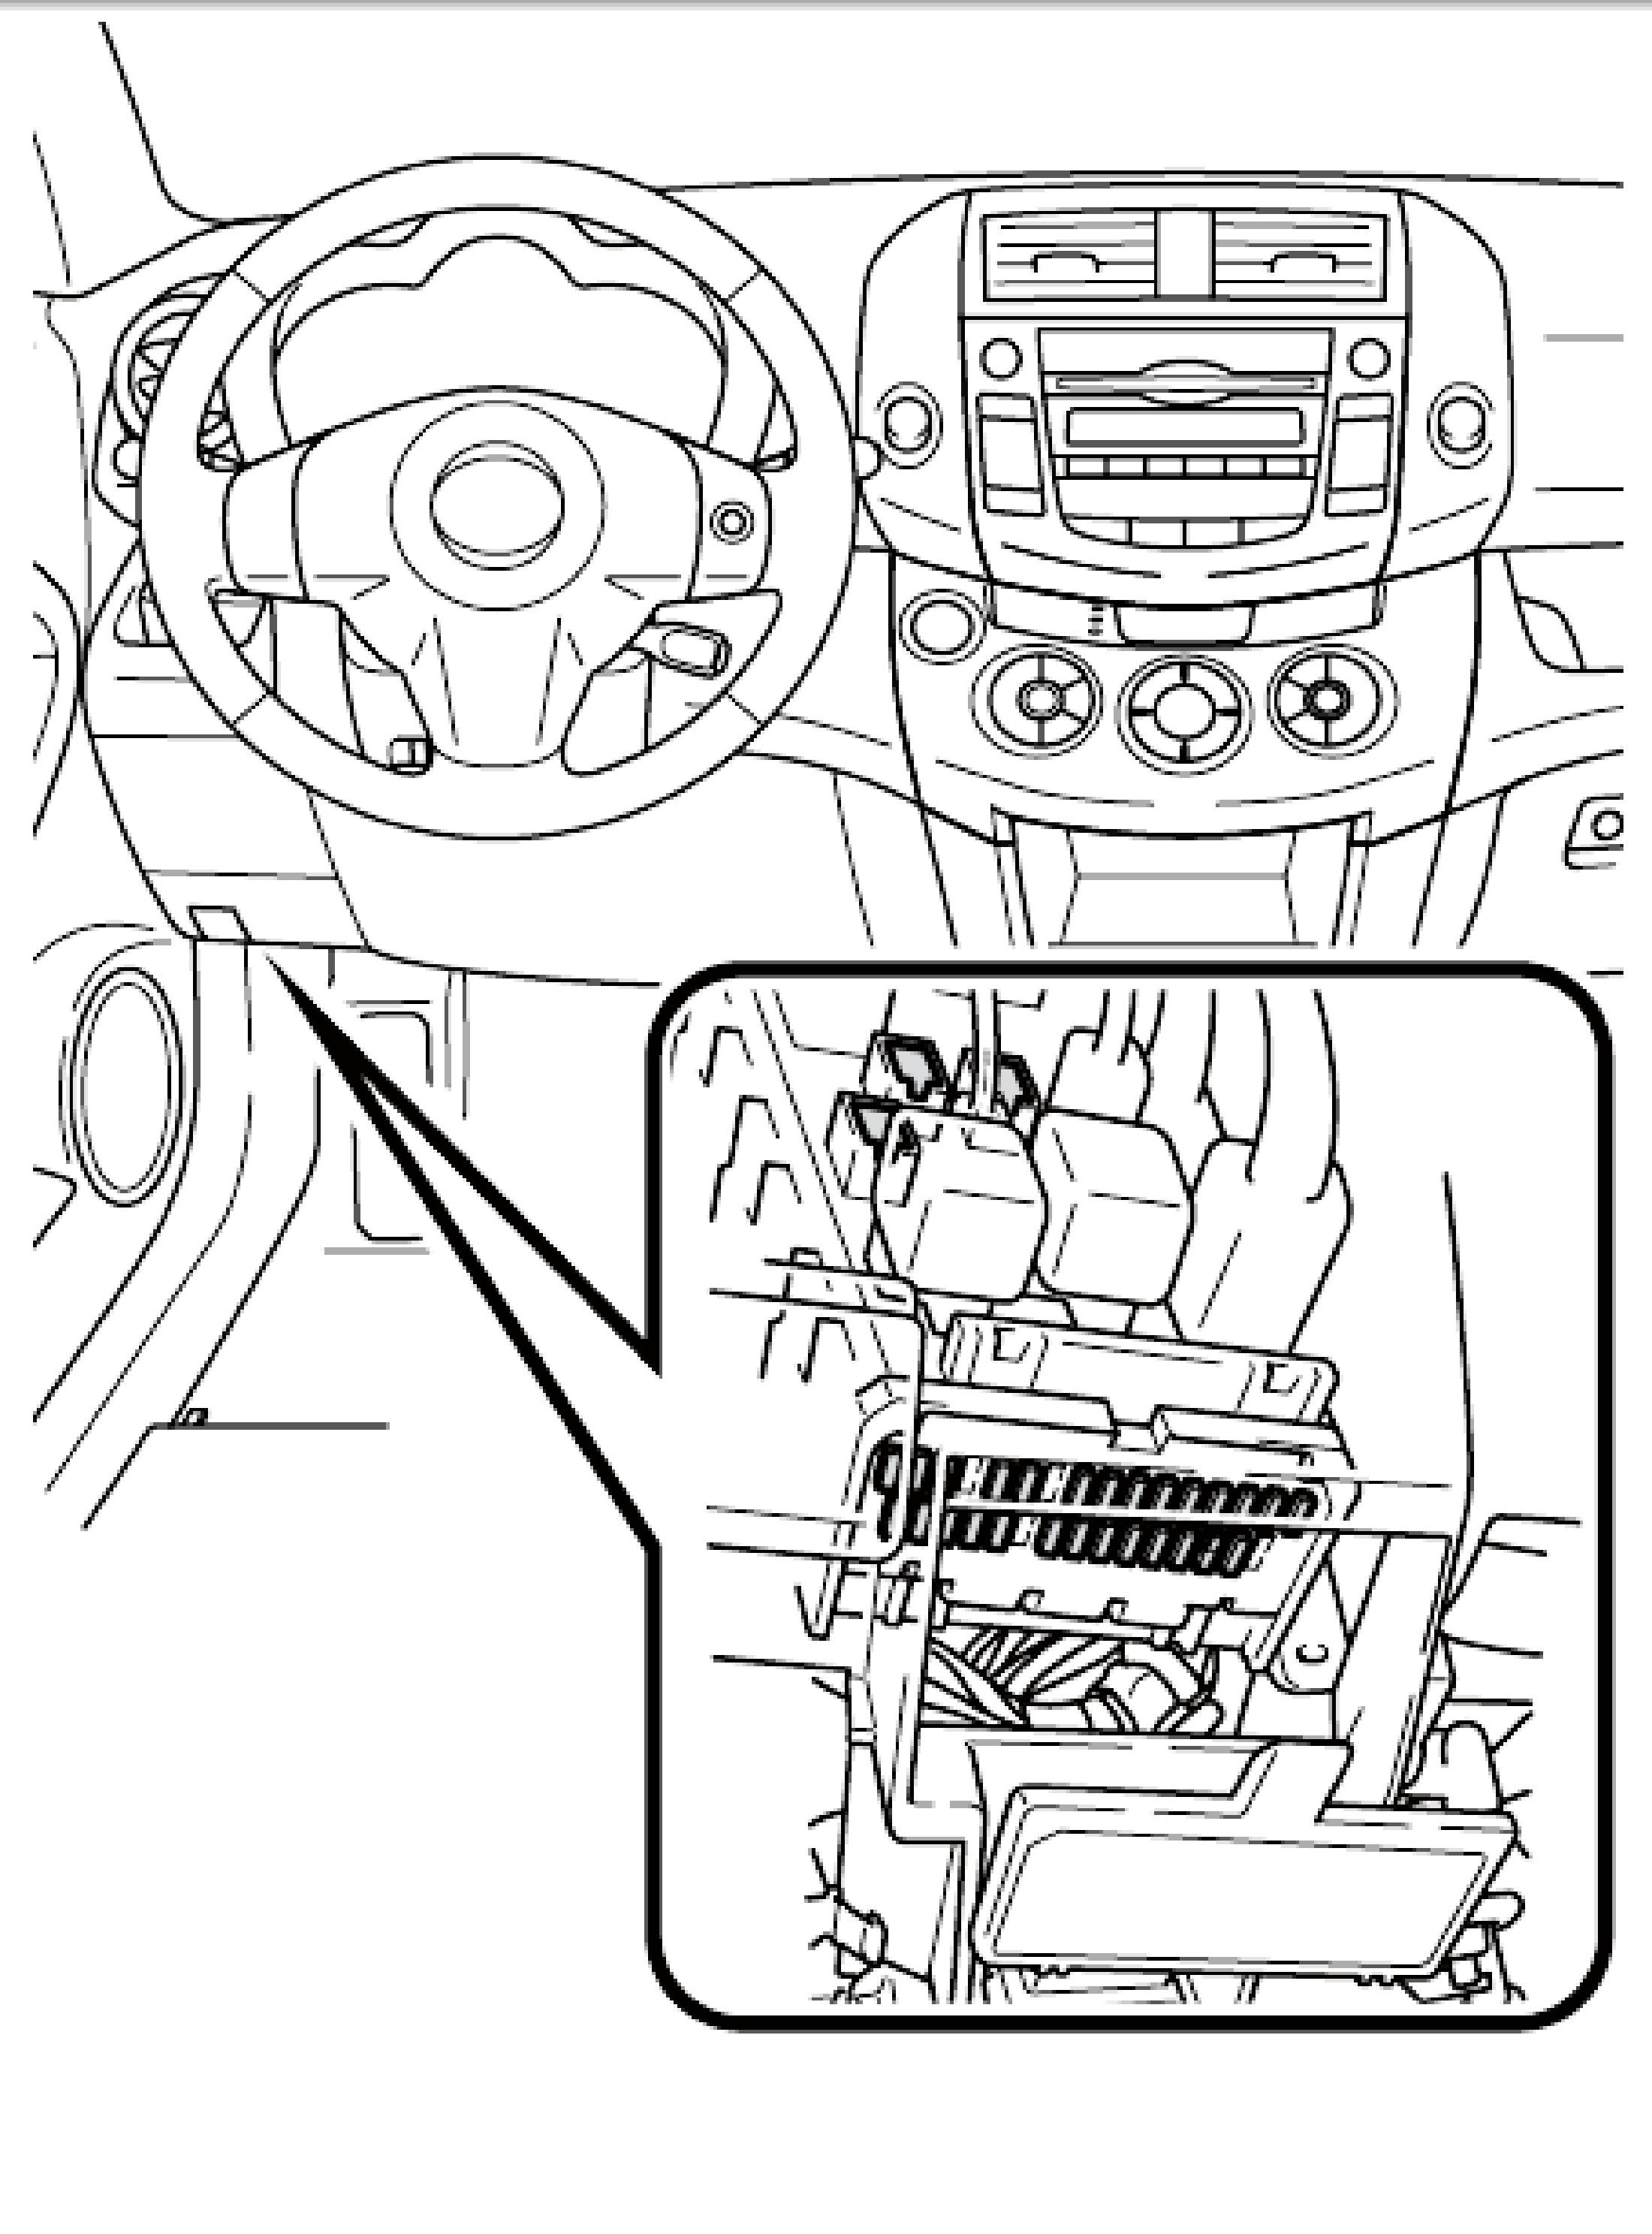 Toyota Camry Fuse Box Diagram